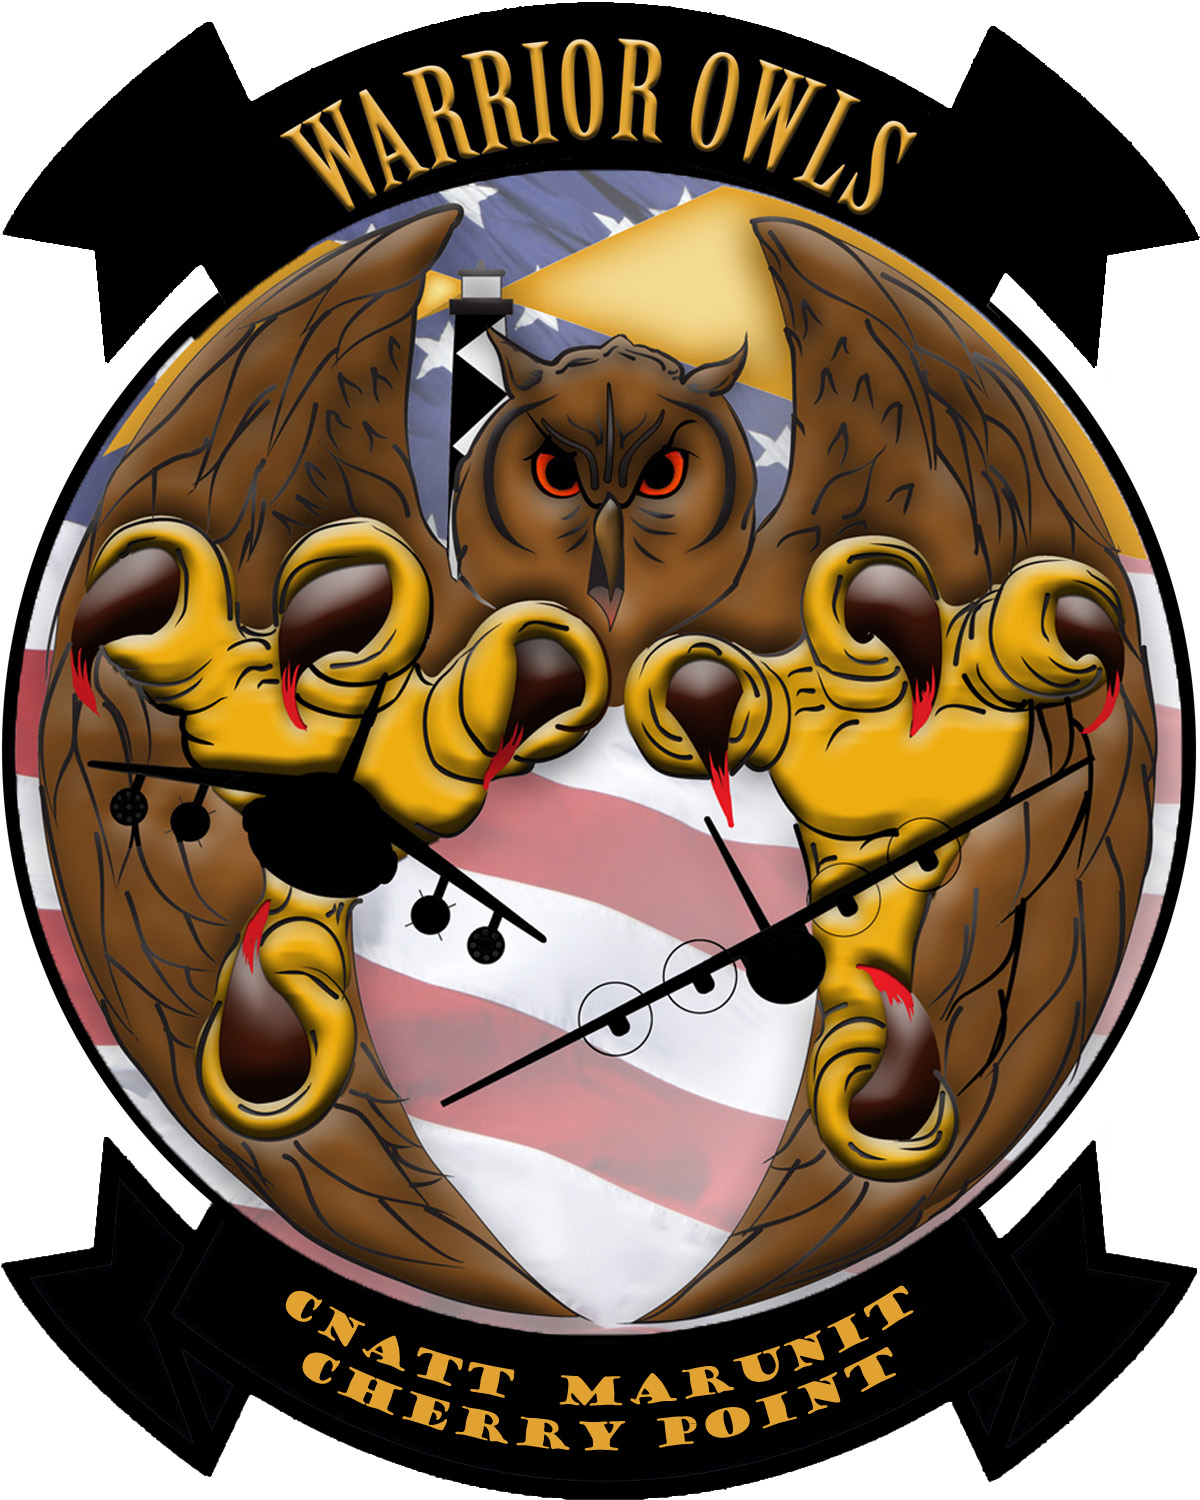 The Official Web site of Marine Corps Air Station Cherry Point